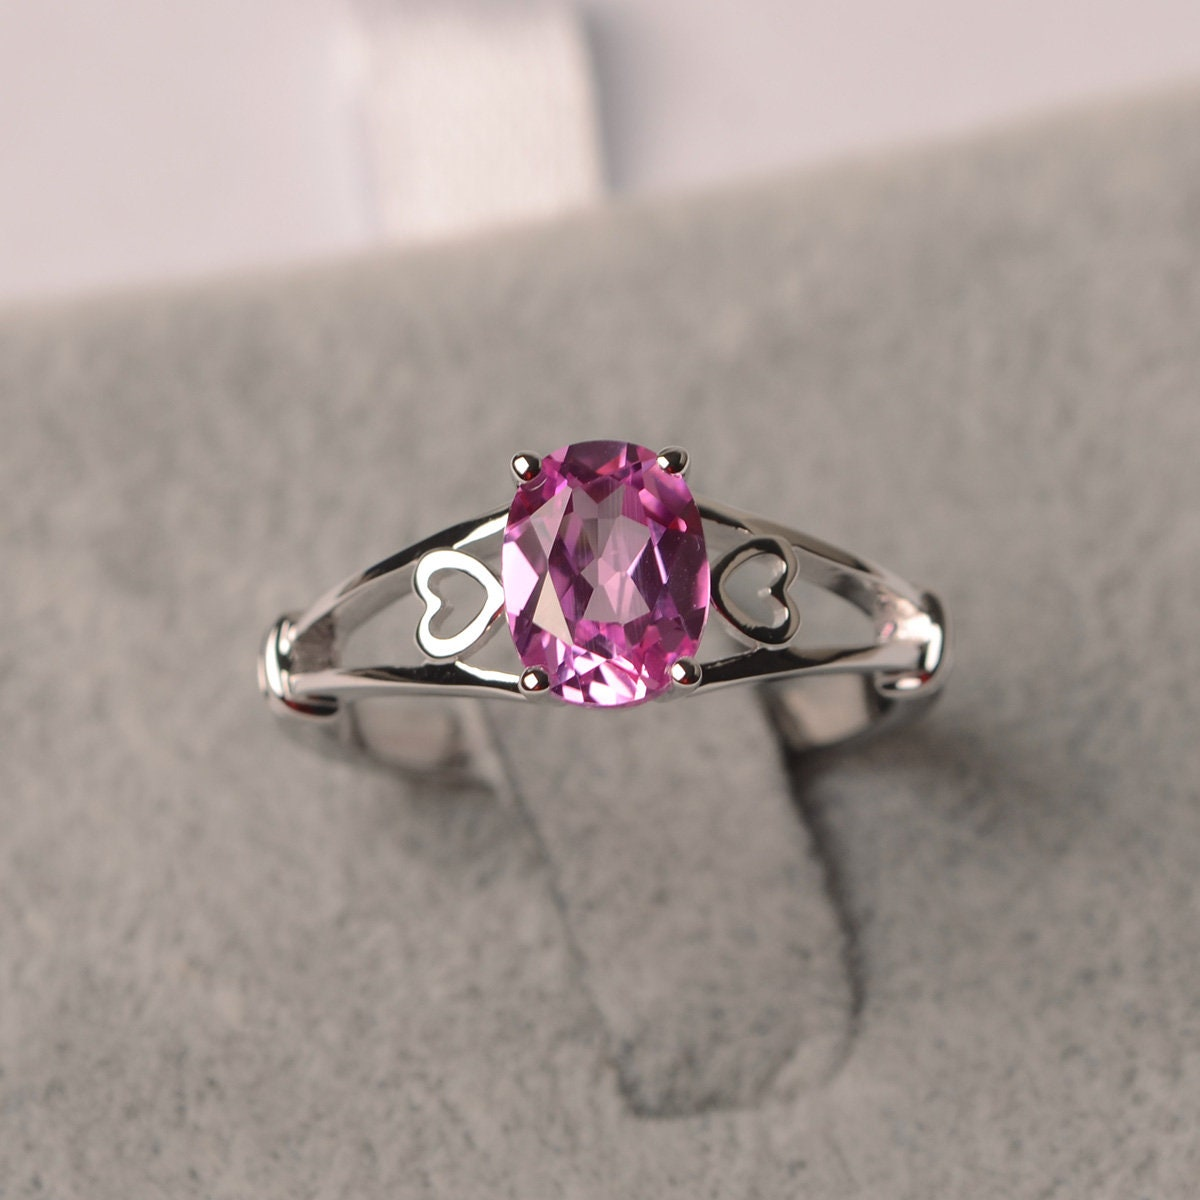 Pink sapphire ring oval cut white gold solitaire image 0